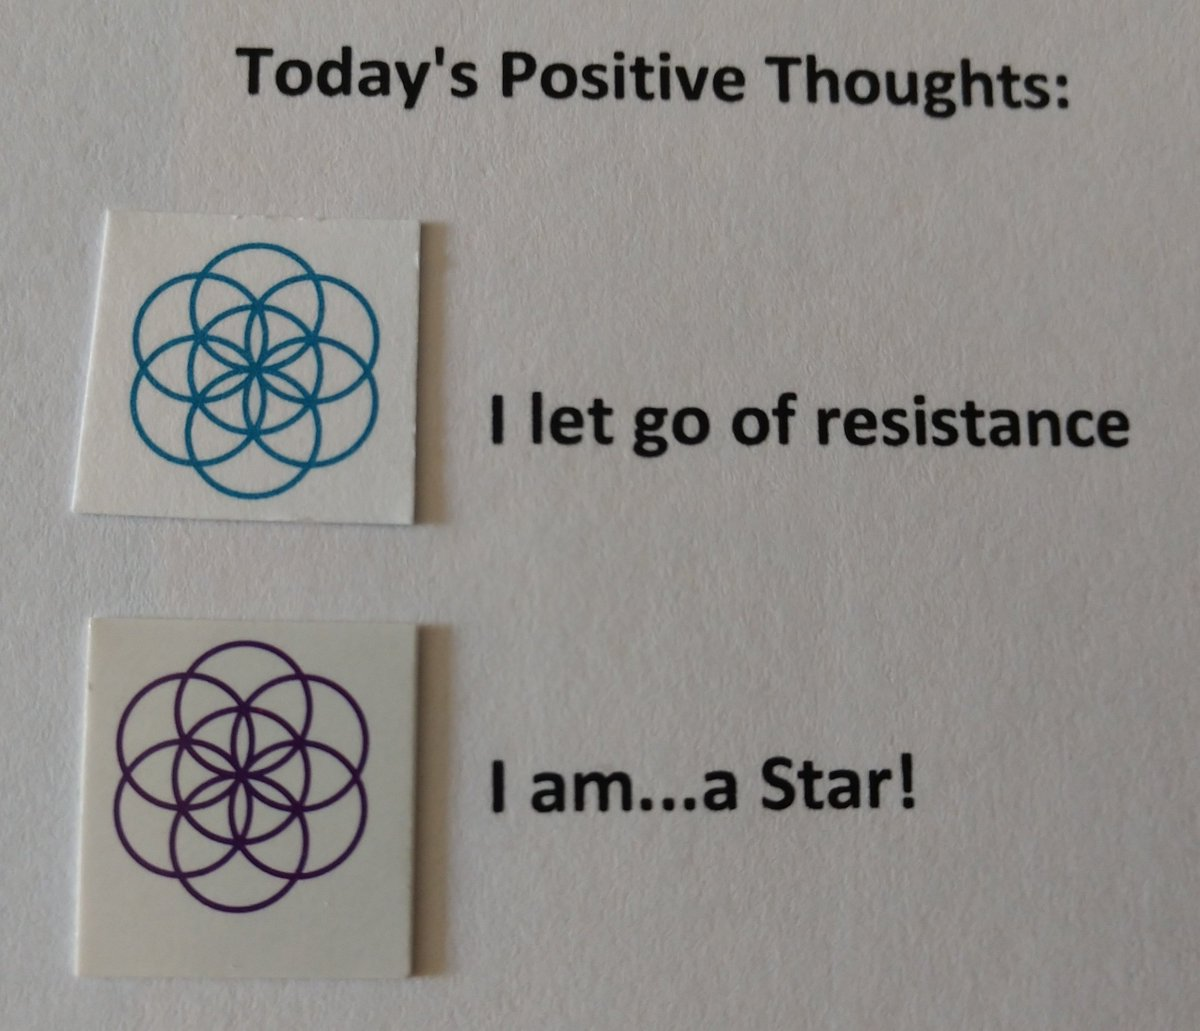 test Twitter Media - Today's Positive Thoughts: I let go of resistance and I am...a Star! #affirmation https://t.co/NR94xHwfh6